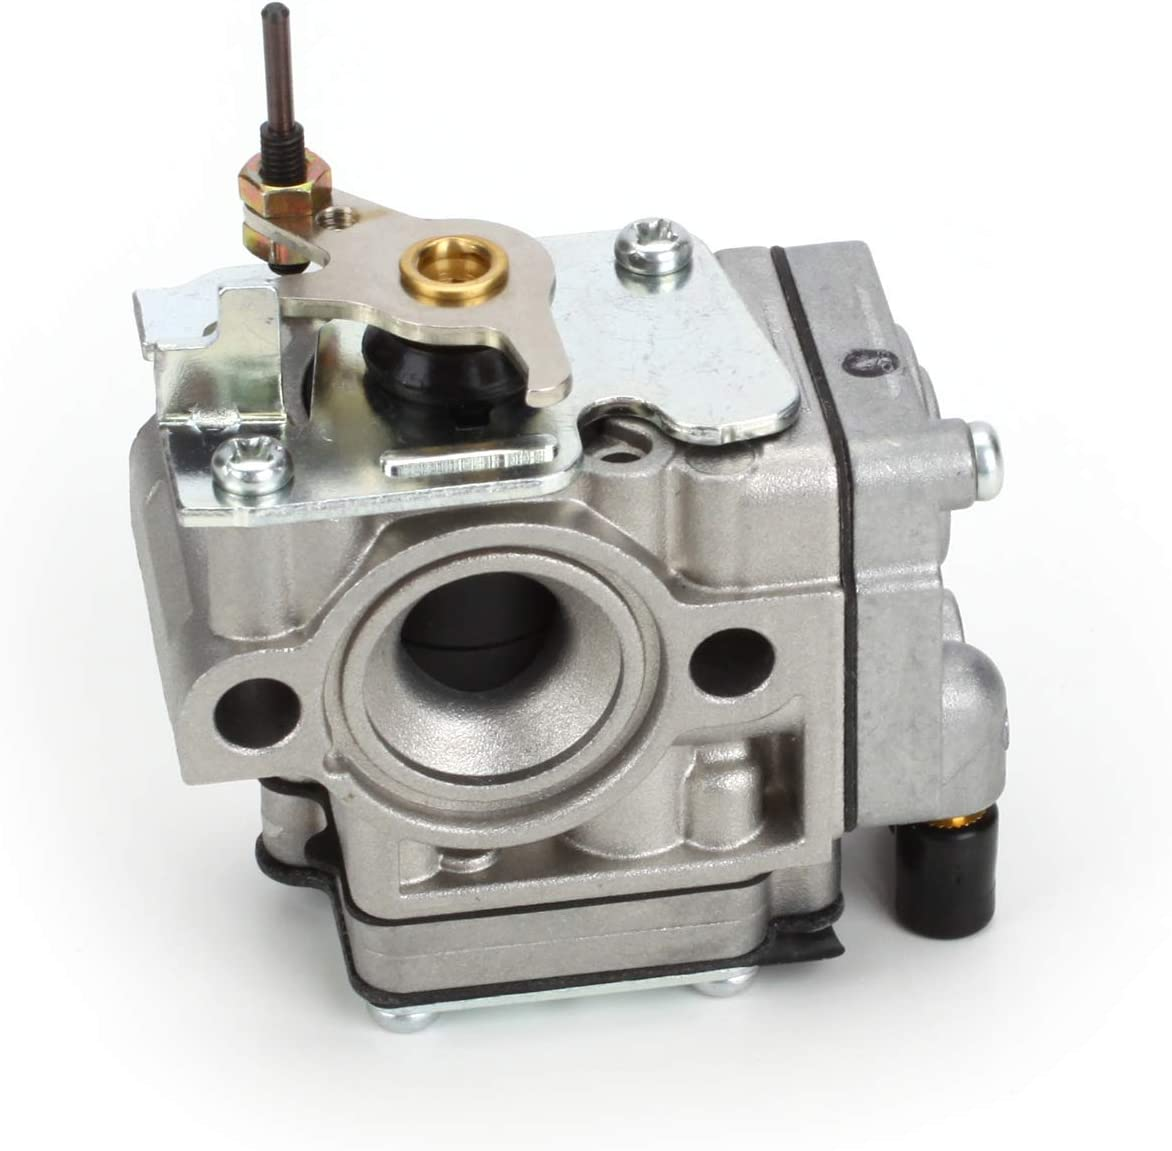 Year-end gift Saito Engines Carb Body BG Assembly: Luxury SAIG57T831